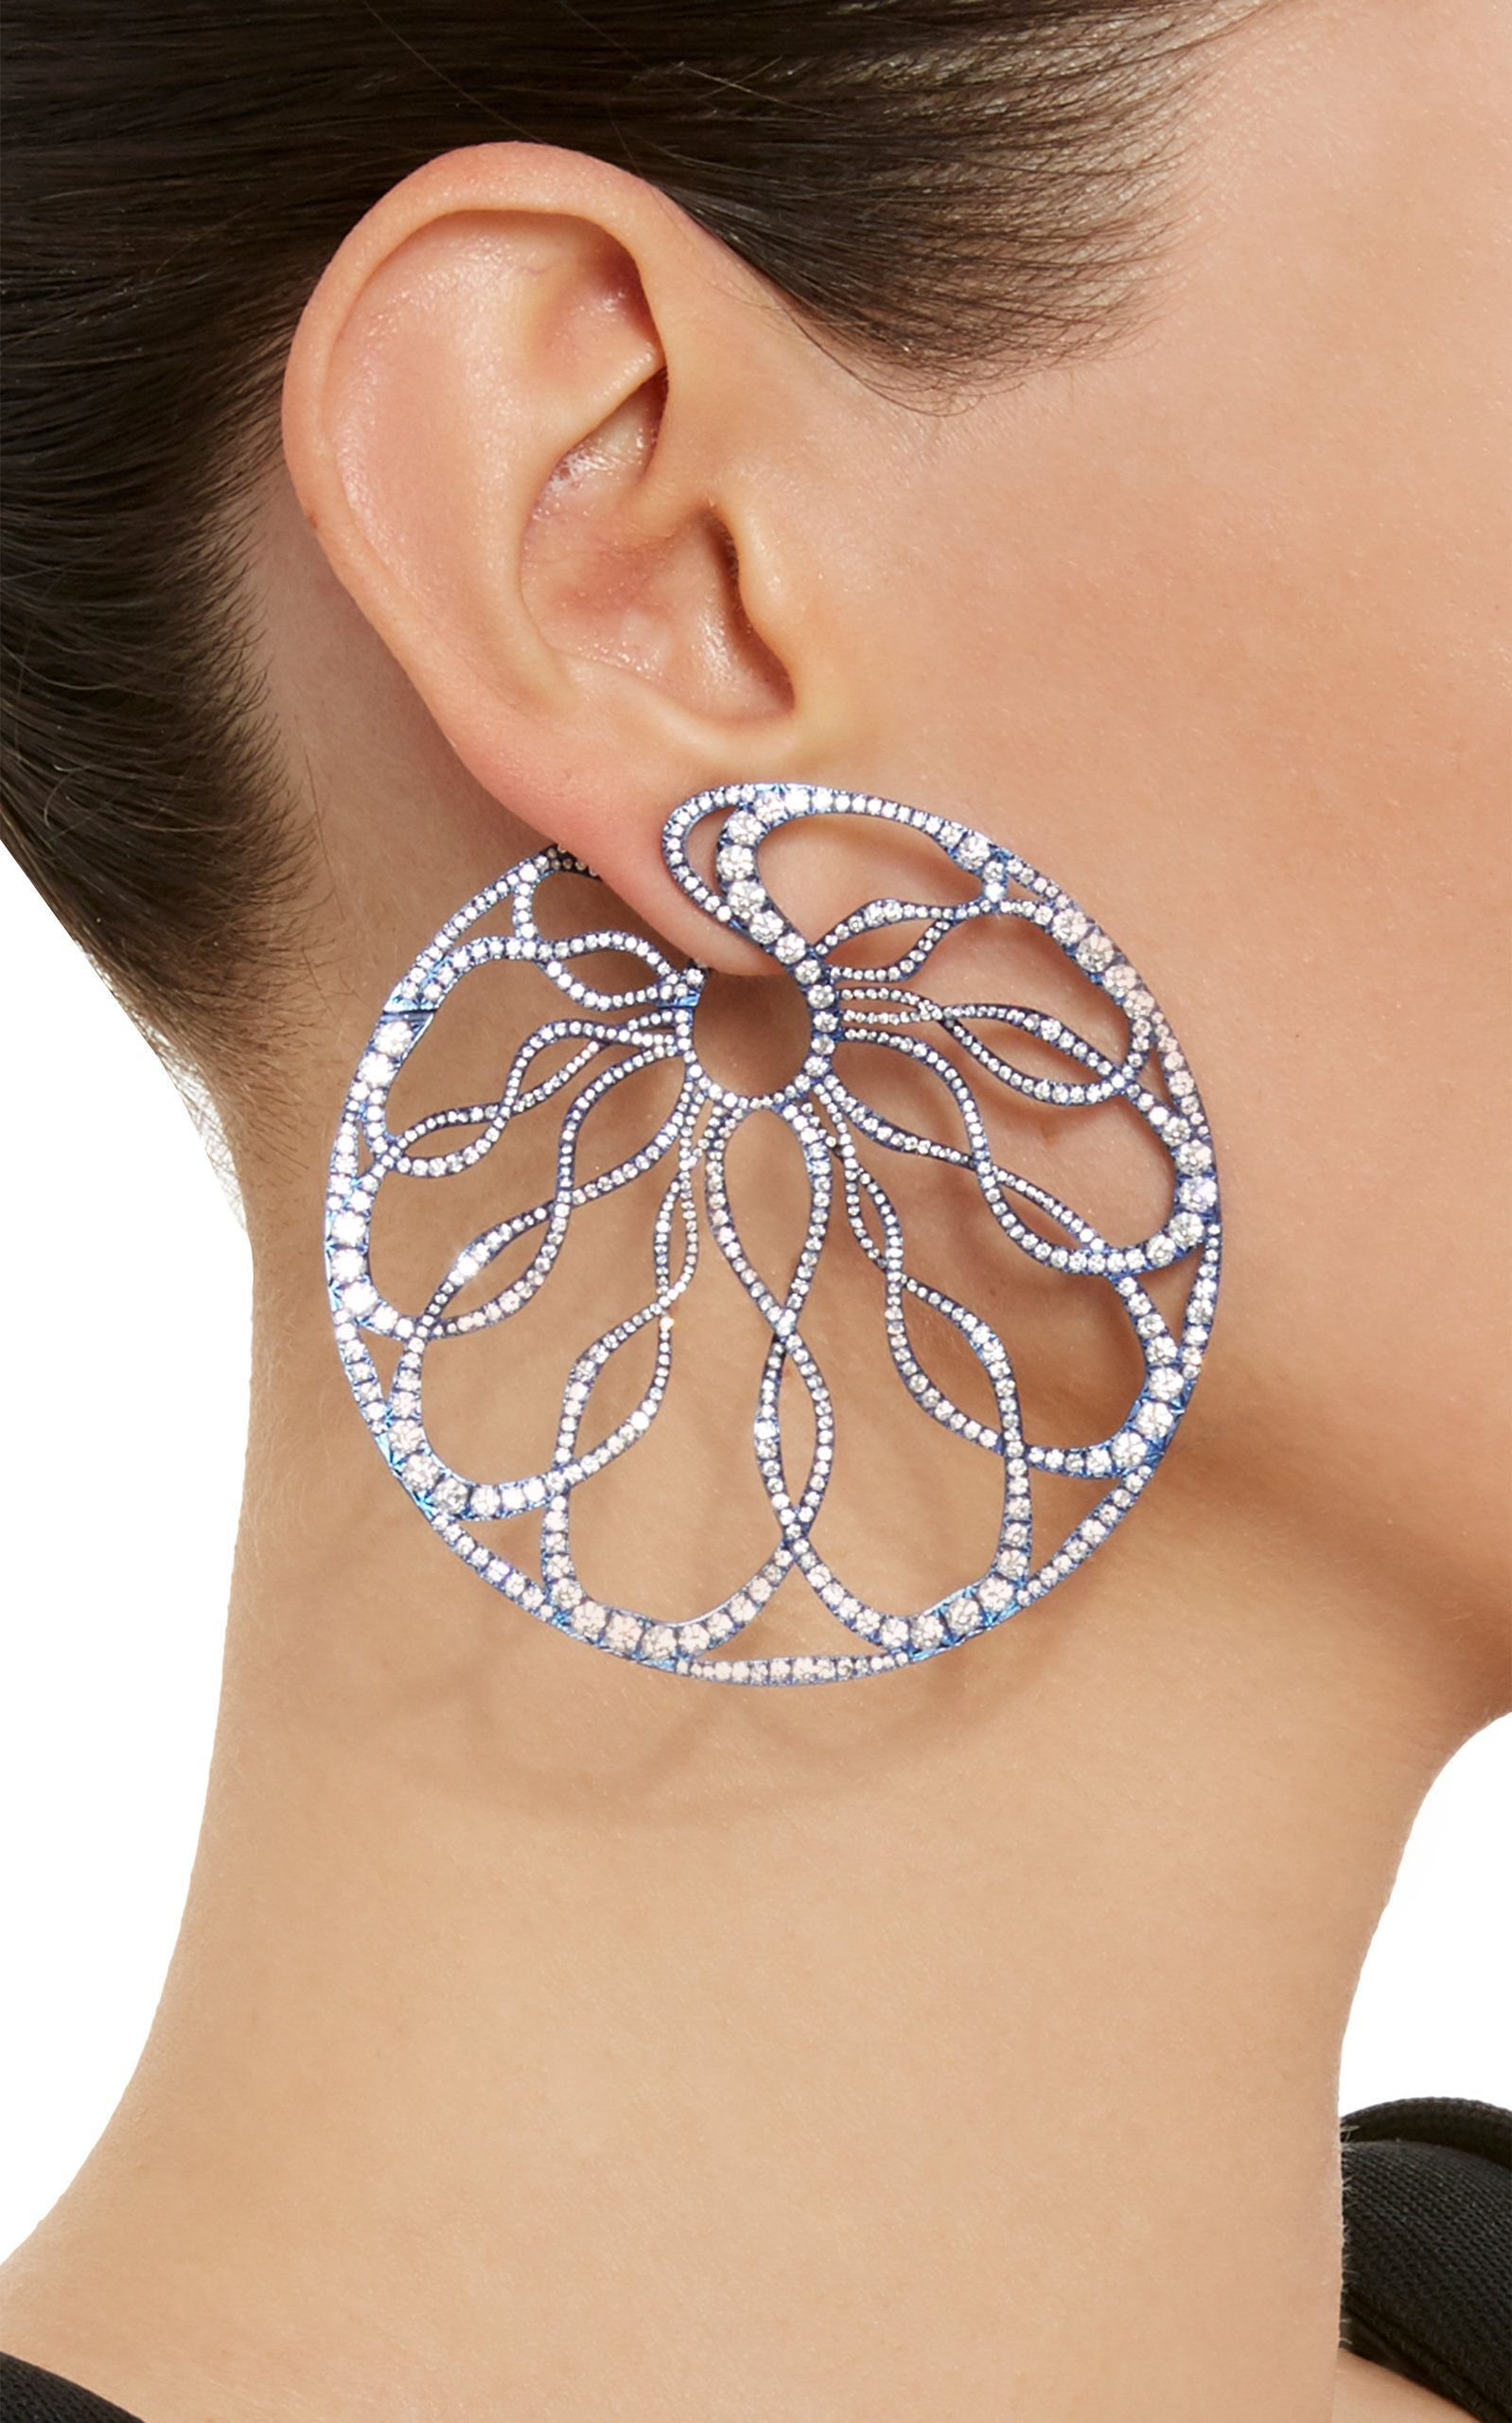 Arunashi e A Kind Diamond Hoop Earrings $88 000